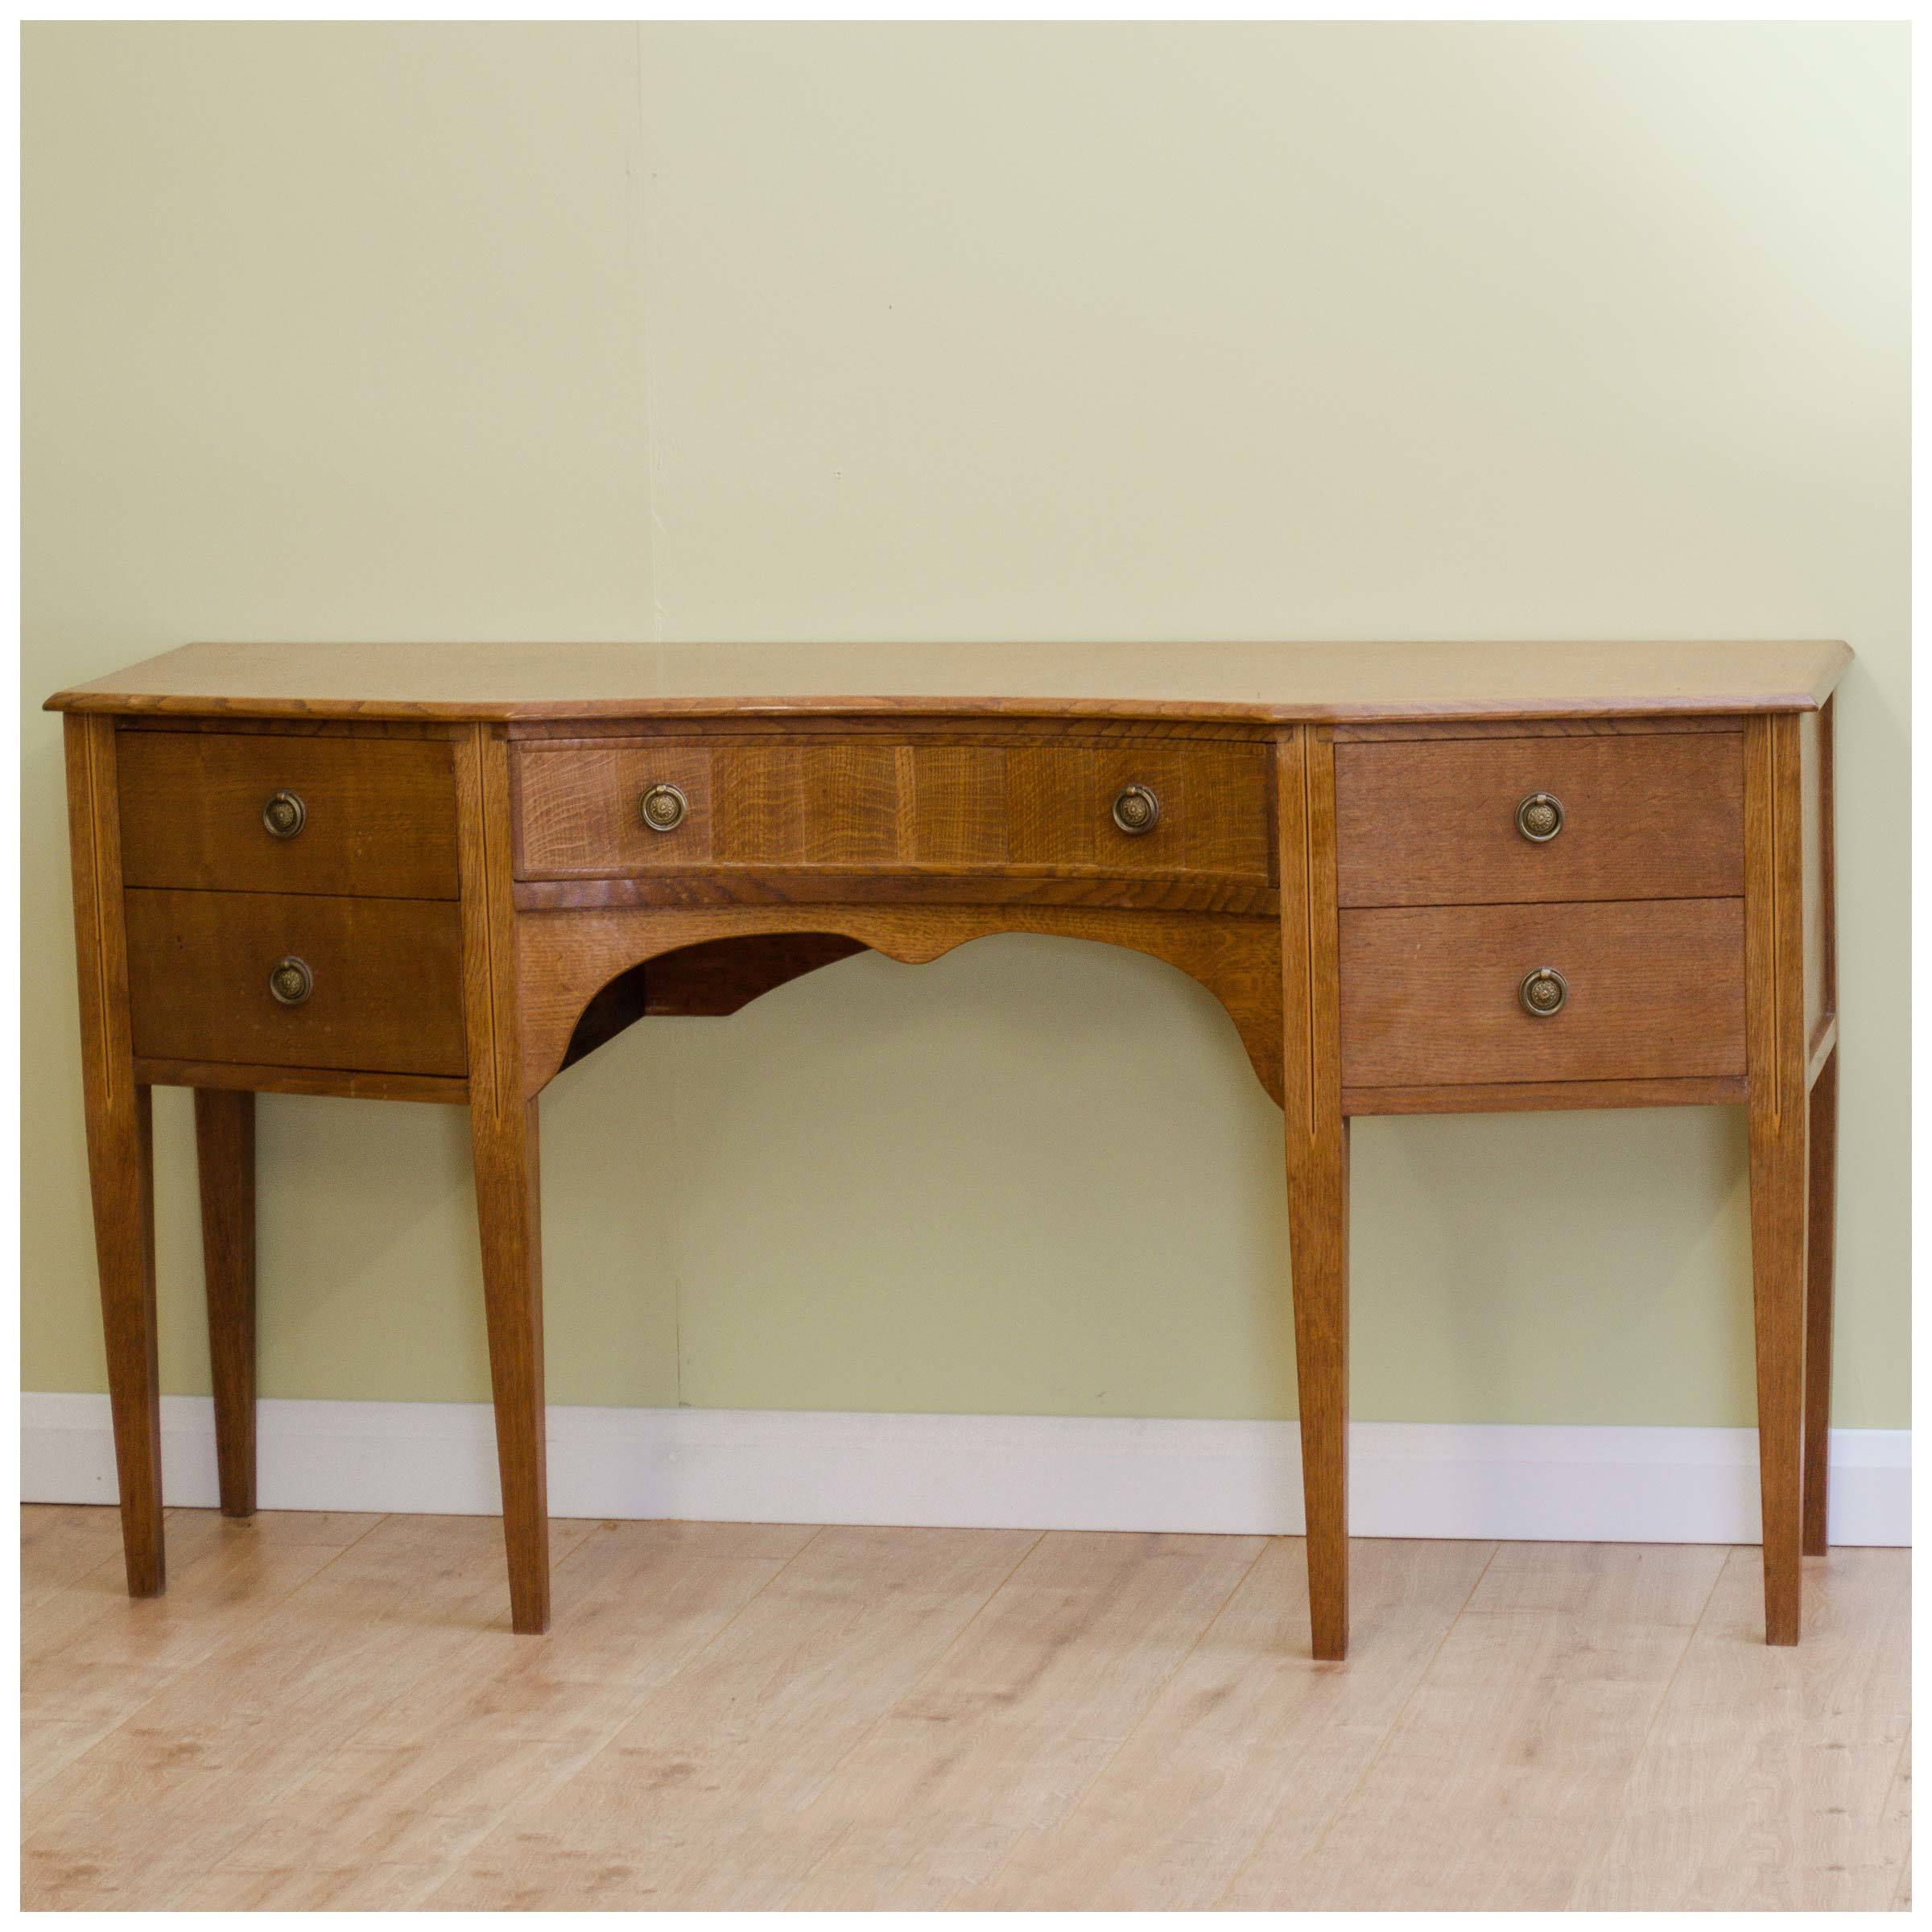 cotswold-school-inlaid-oak-sideboard-dressing-table-or-writing-desk-b0020011a.jpg